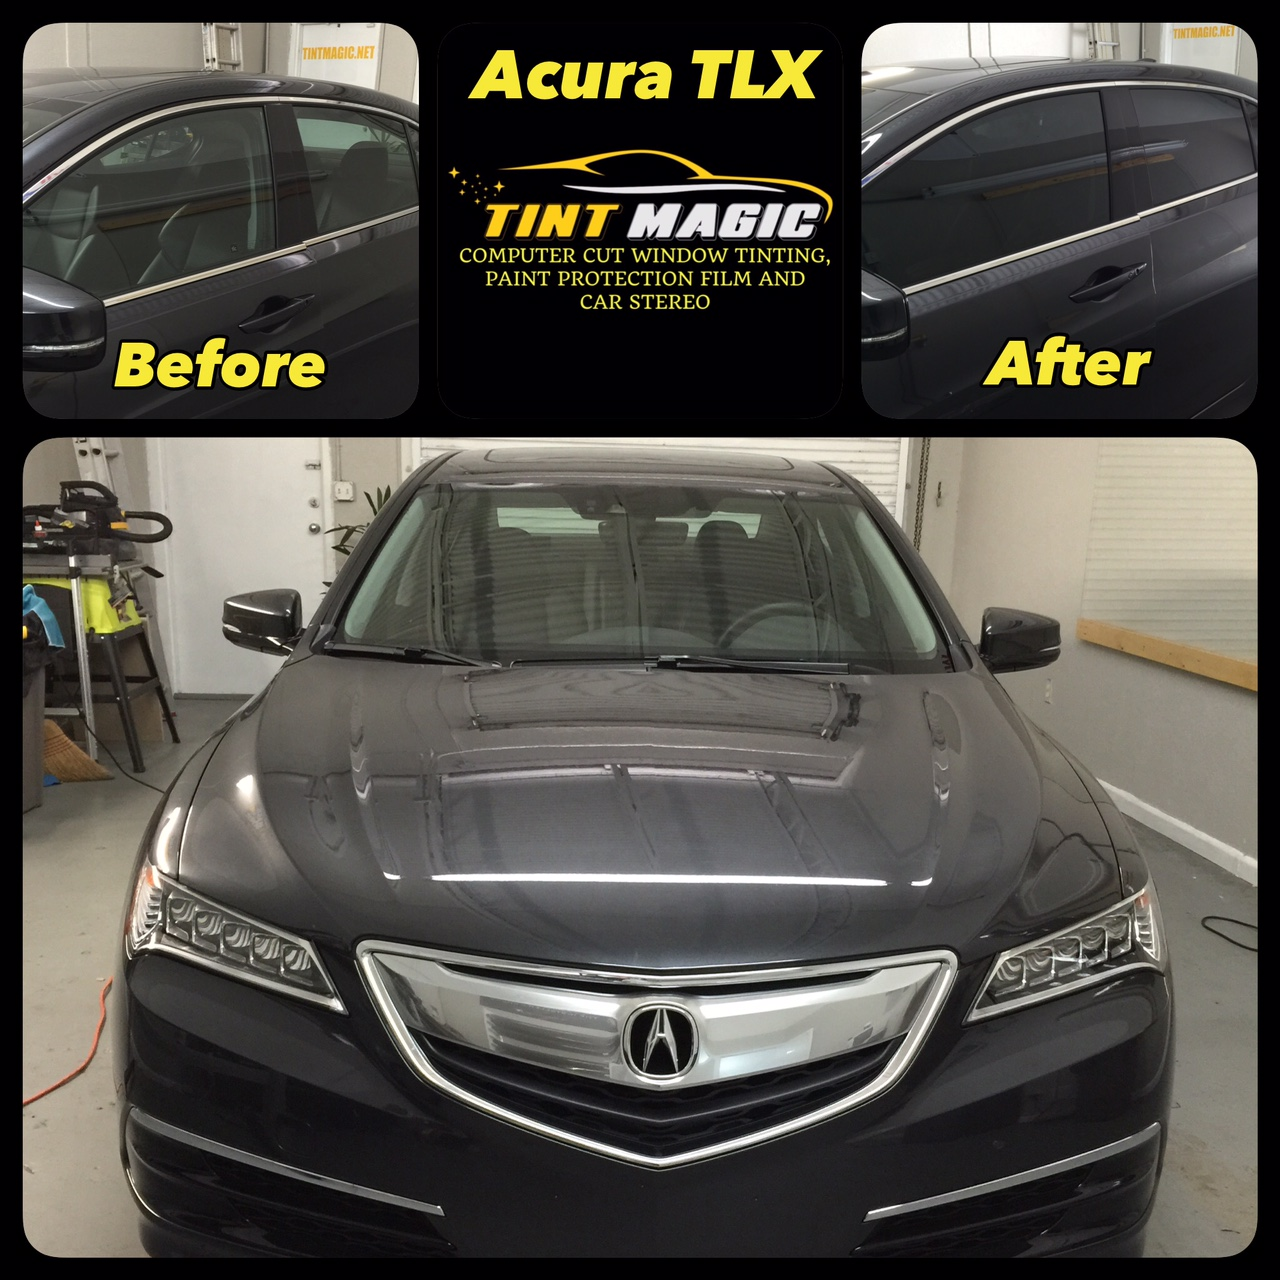 Acura TLX-Tint Magic Window Tinting Coral Springs